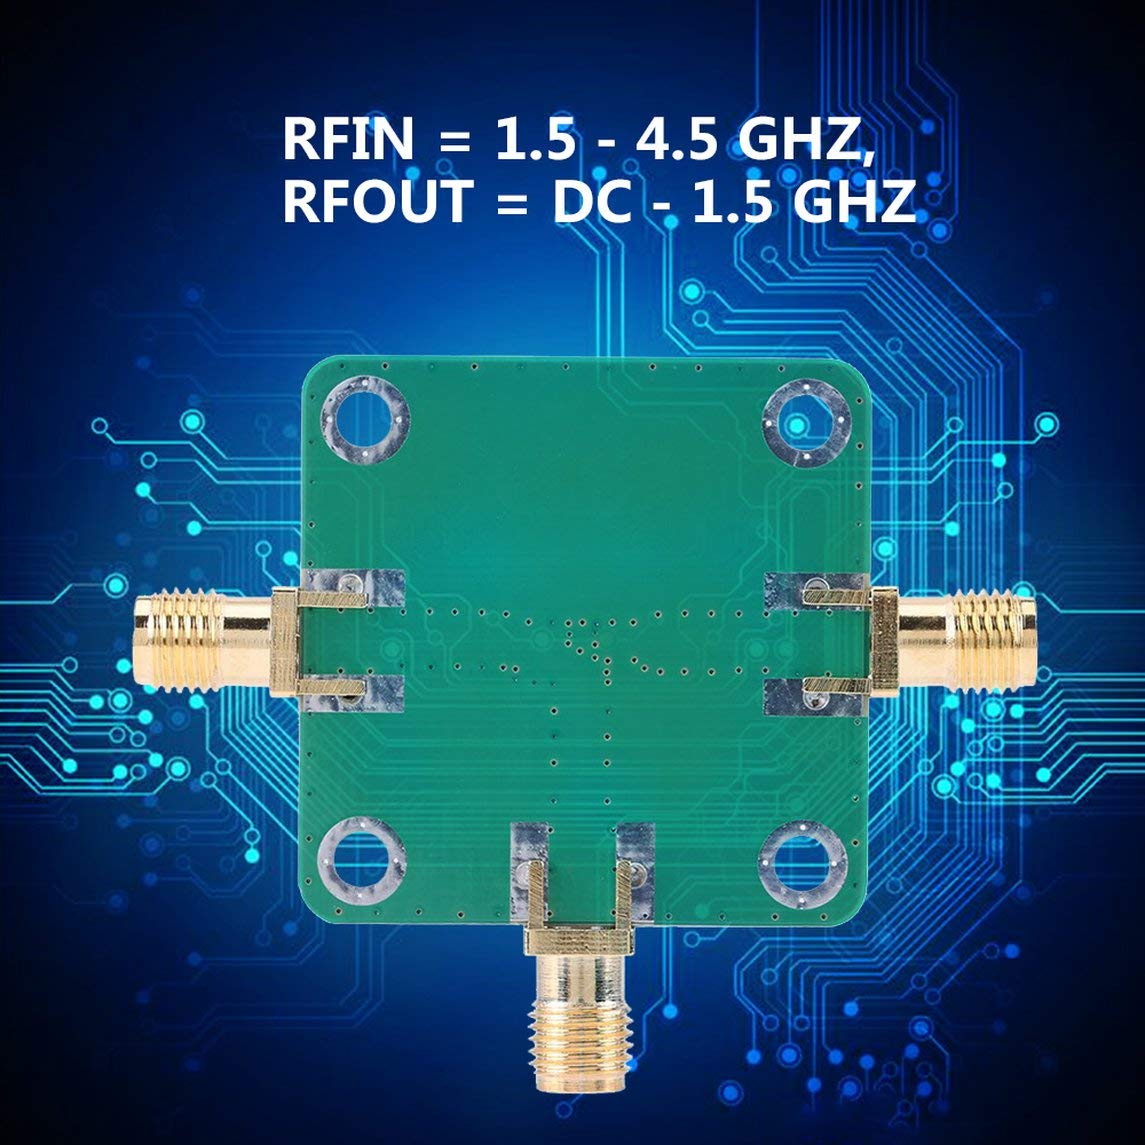 YXTFN Microwave Radio Frequency Rf Mixer Rfin=1.5-4.5Ghz Rfout=Dc-1.5Ghz Lo=312 Mf by Magicalworld (Image #4)